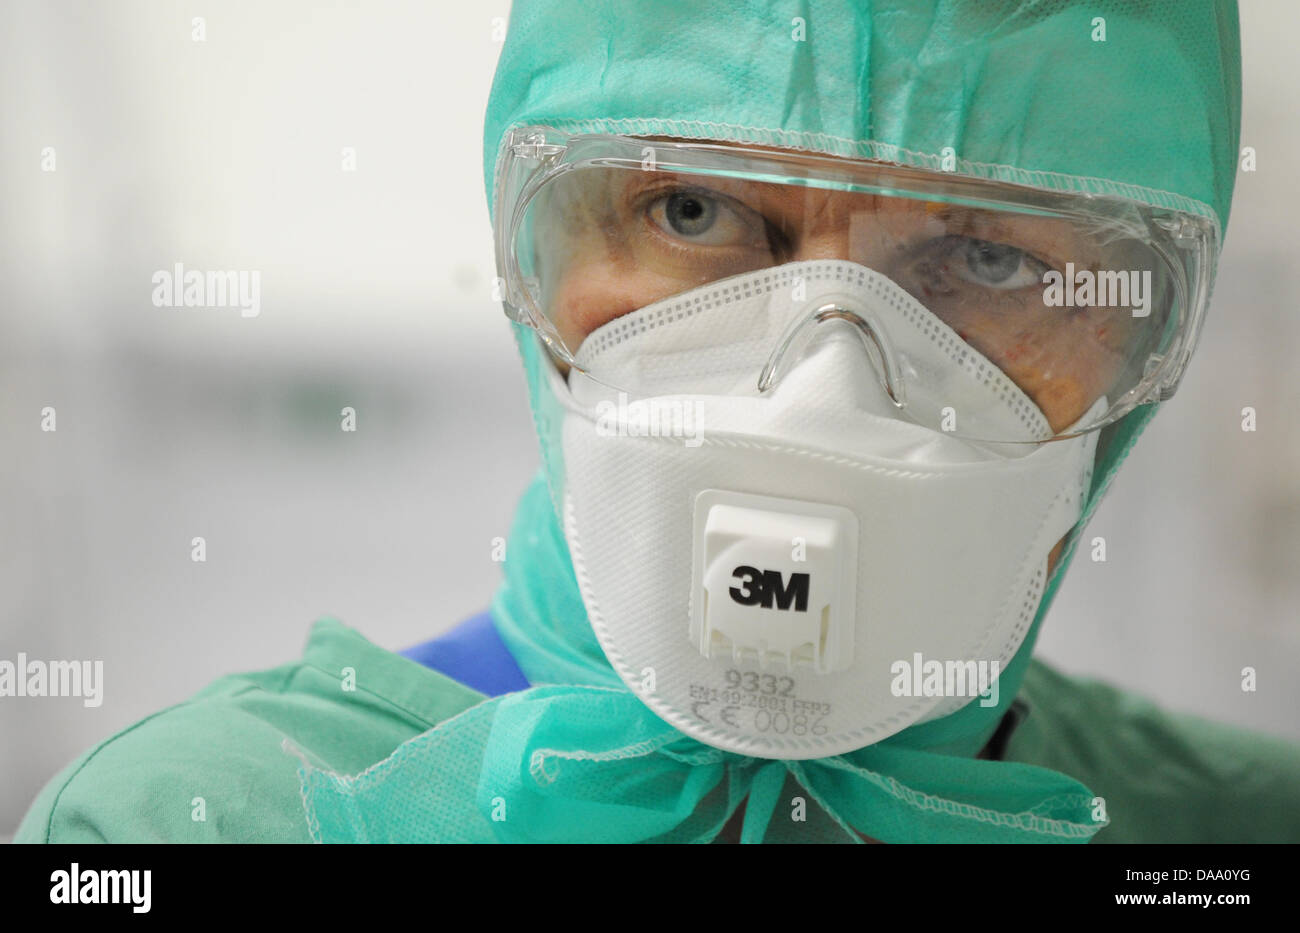 (dpa File) - A file picture, dated 30 April 2009, shows a nurse wearing protective clothing against infections in - Stock Image